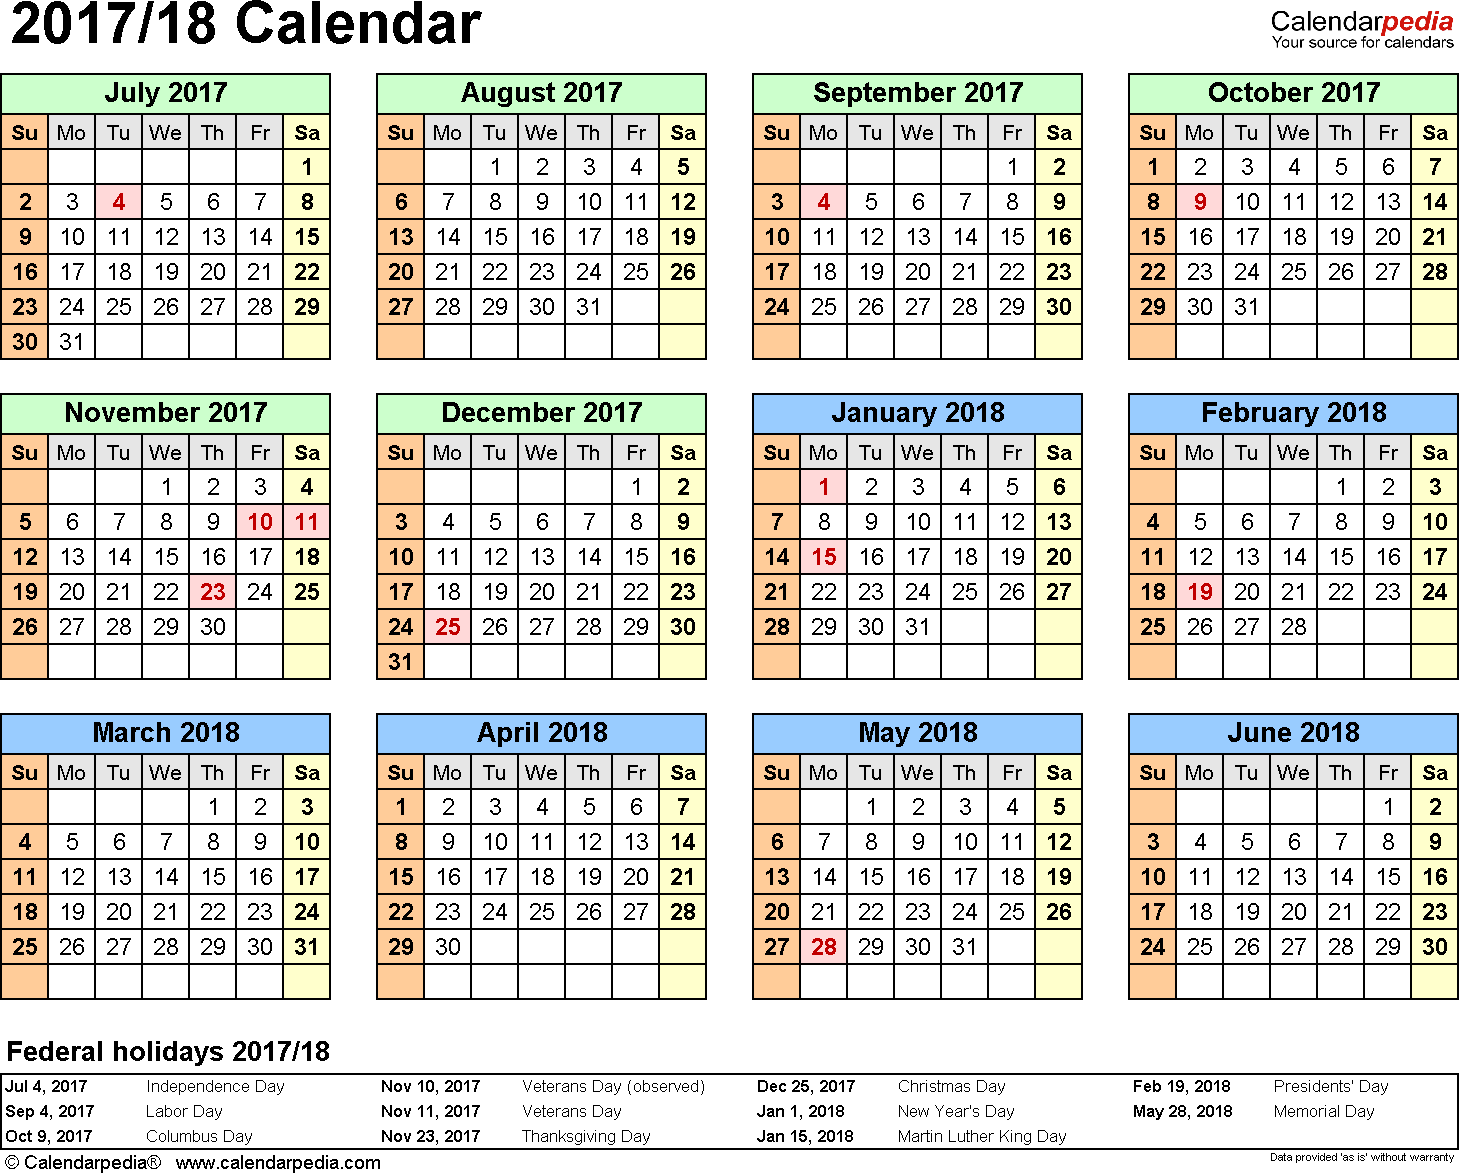 Template 3: 2017/2018 split year/half year calendar, for Microsoft Word (.docx), landscape orientation, year at a glance, 1 page